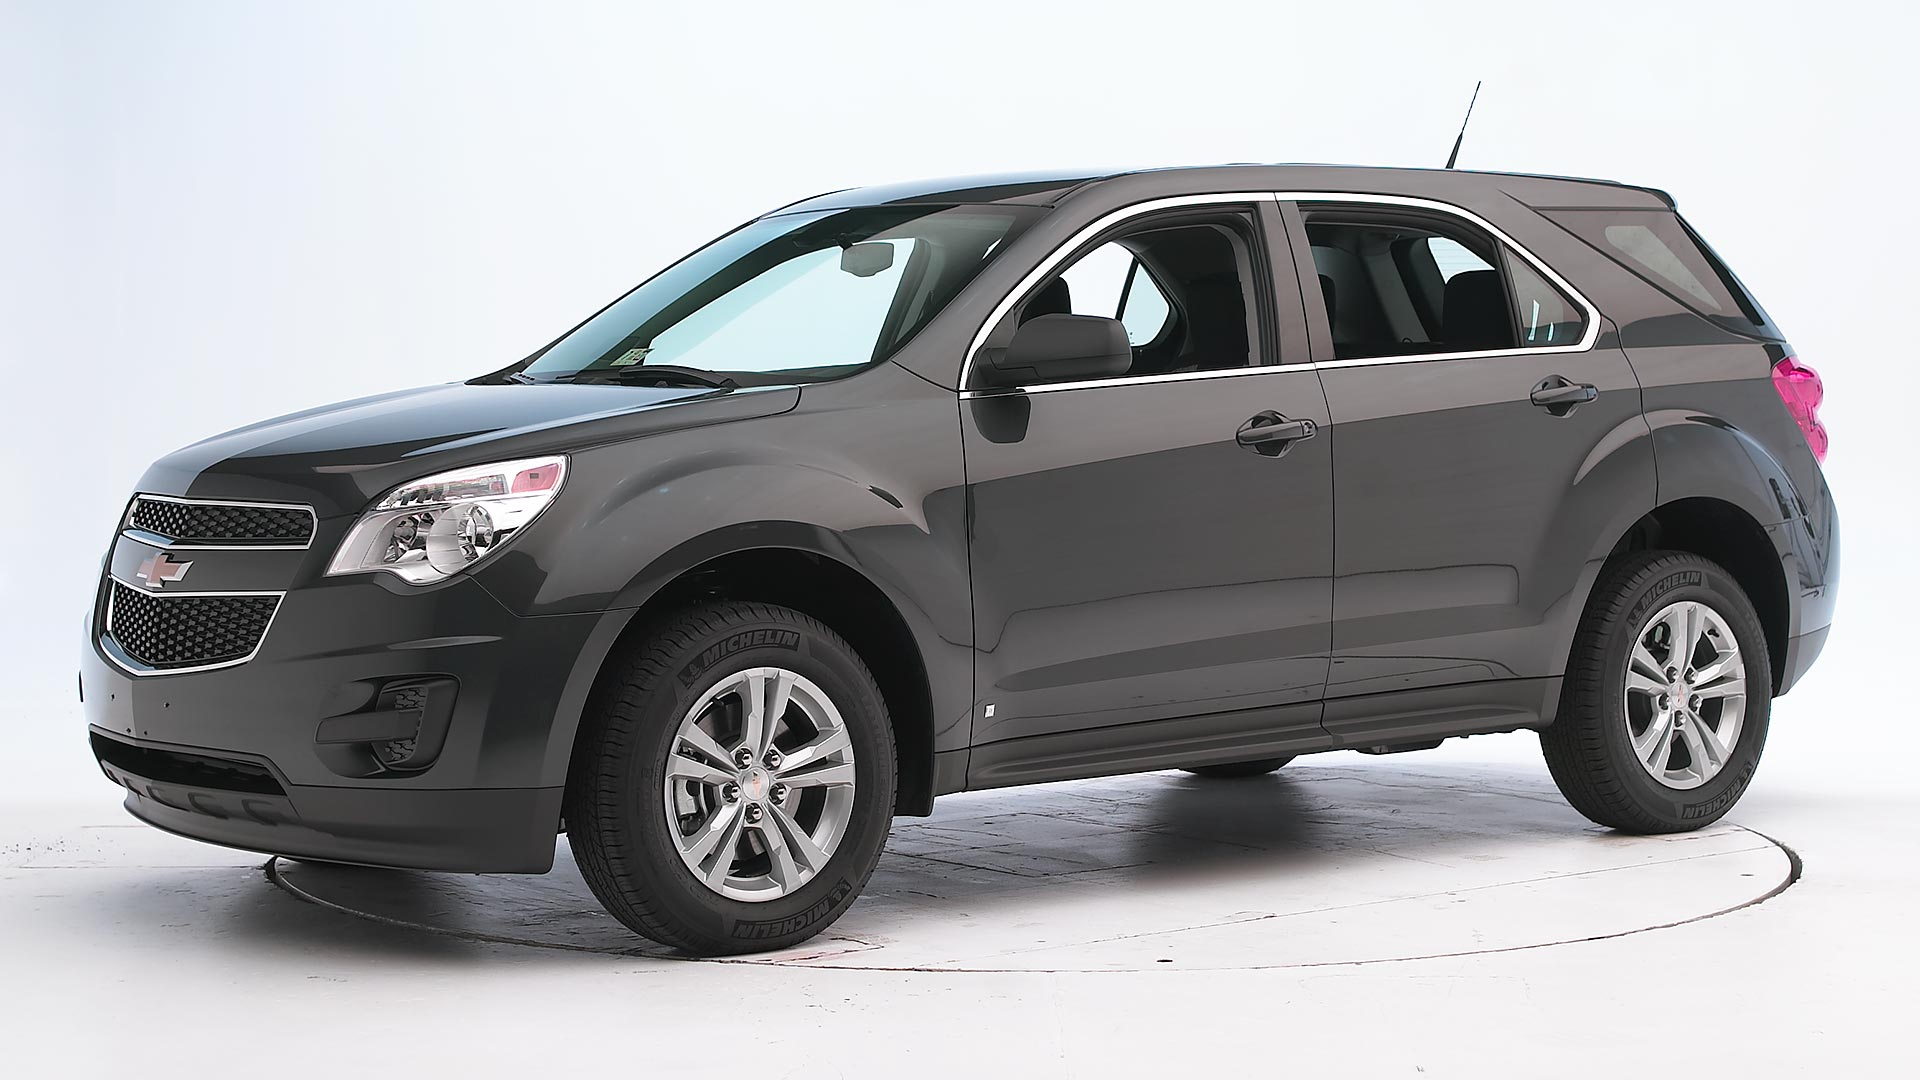 2011 Chevrolet Equinox 4-door SUV